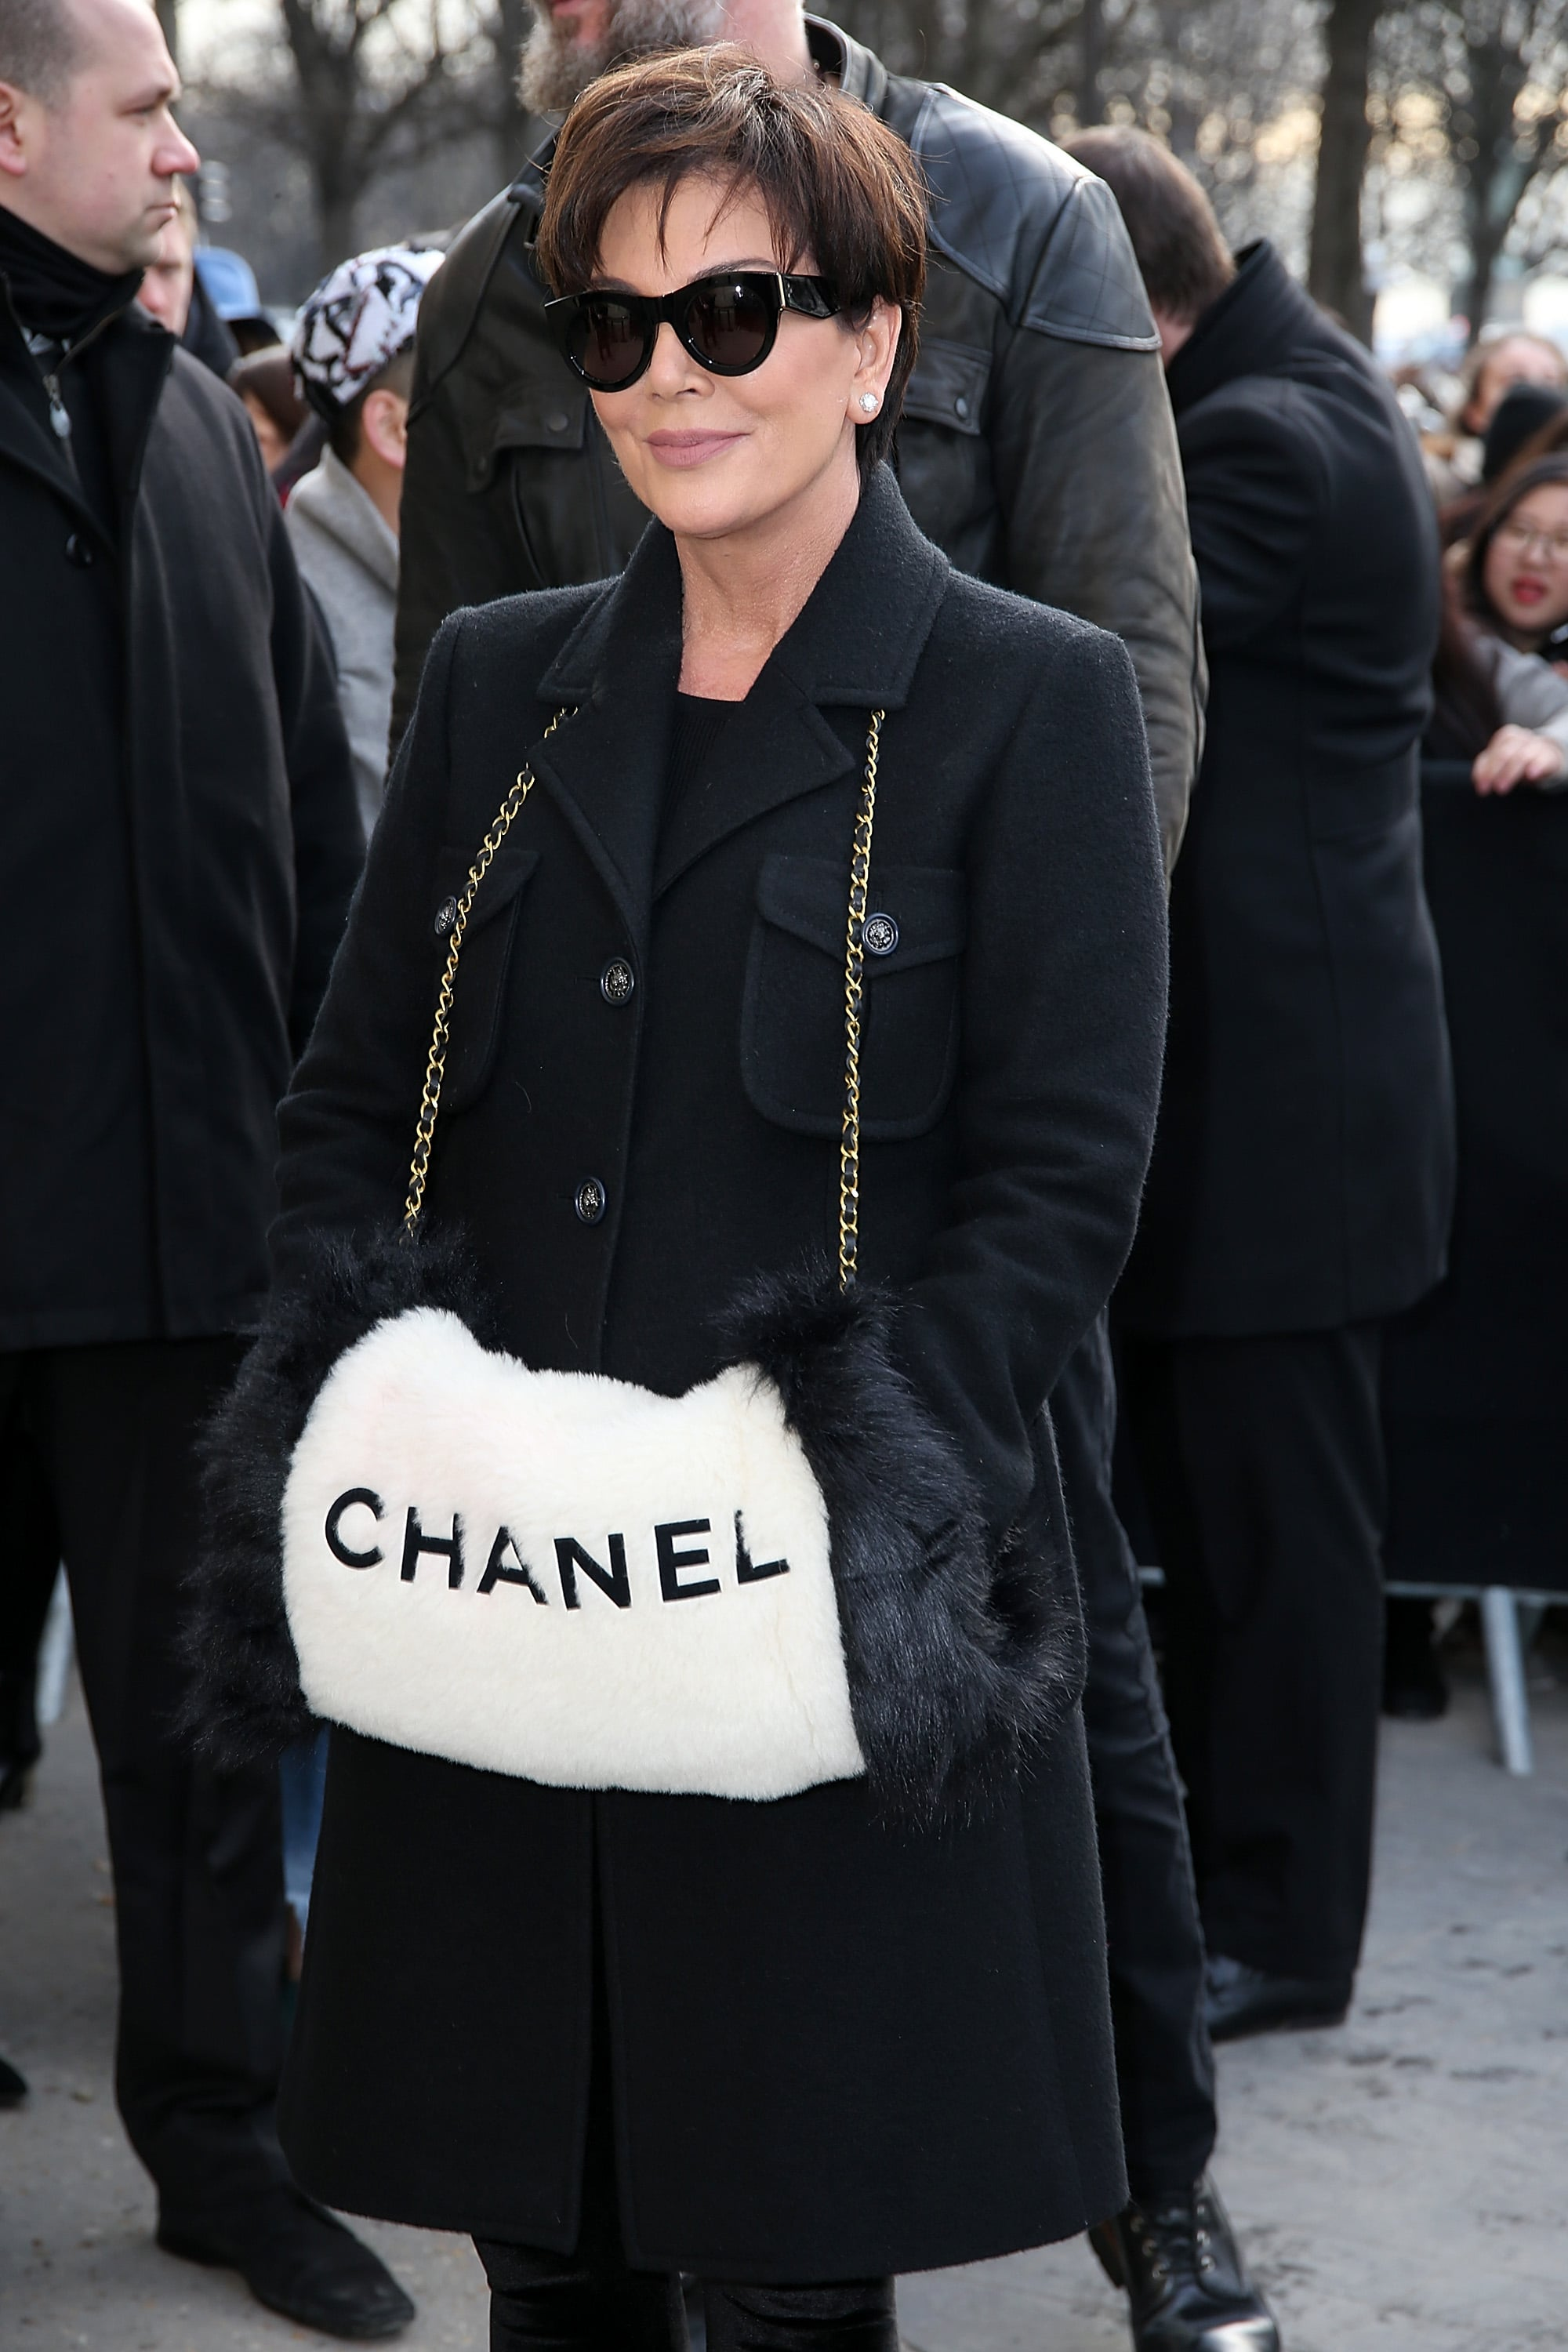 Kris Jenner Showed Up Wearing A Chainstrap Chanel Muffler Everyone Gets A Front Row Seat To The Chanel Show Including You Popsugar Fashion Photo 13